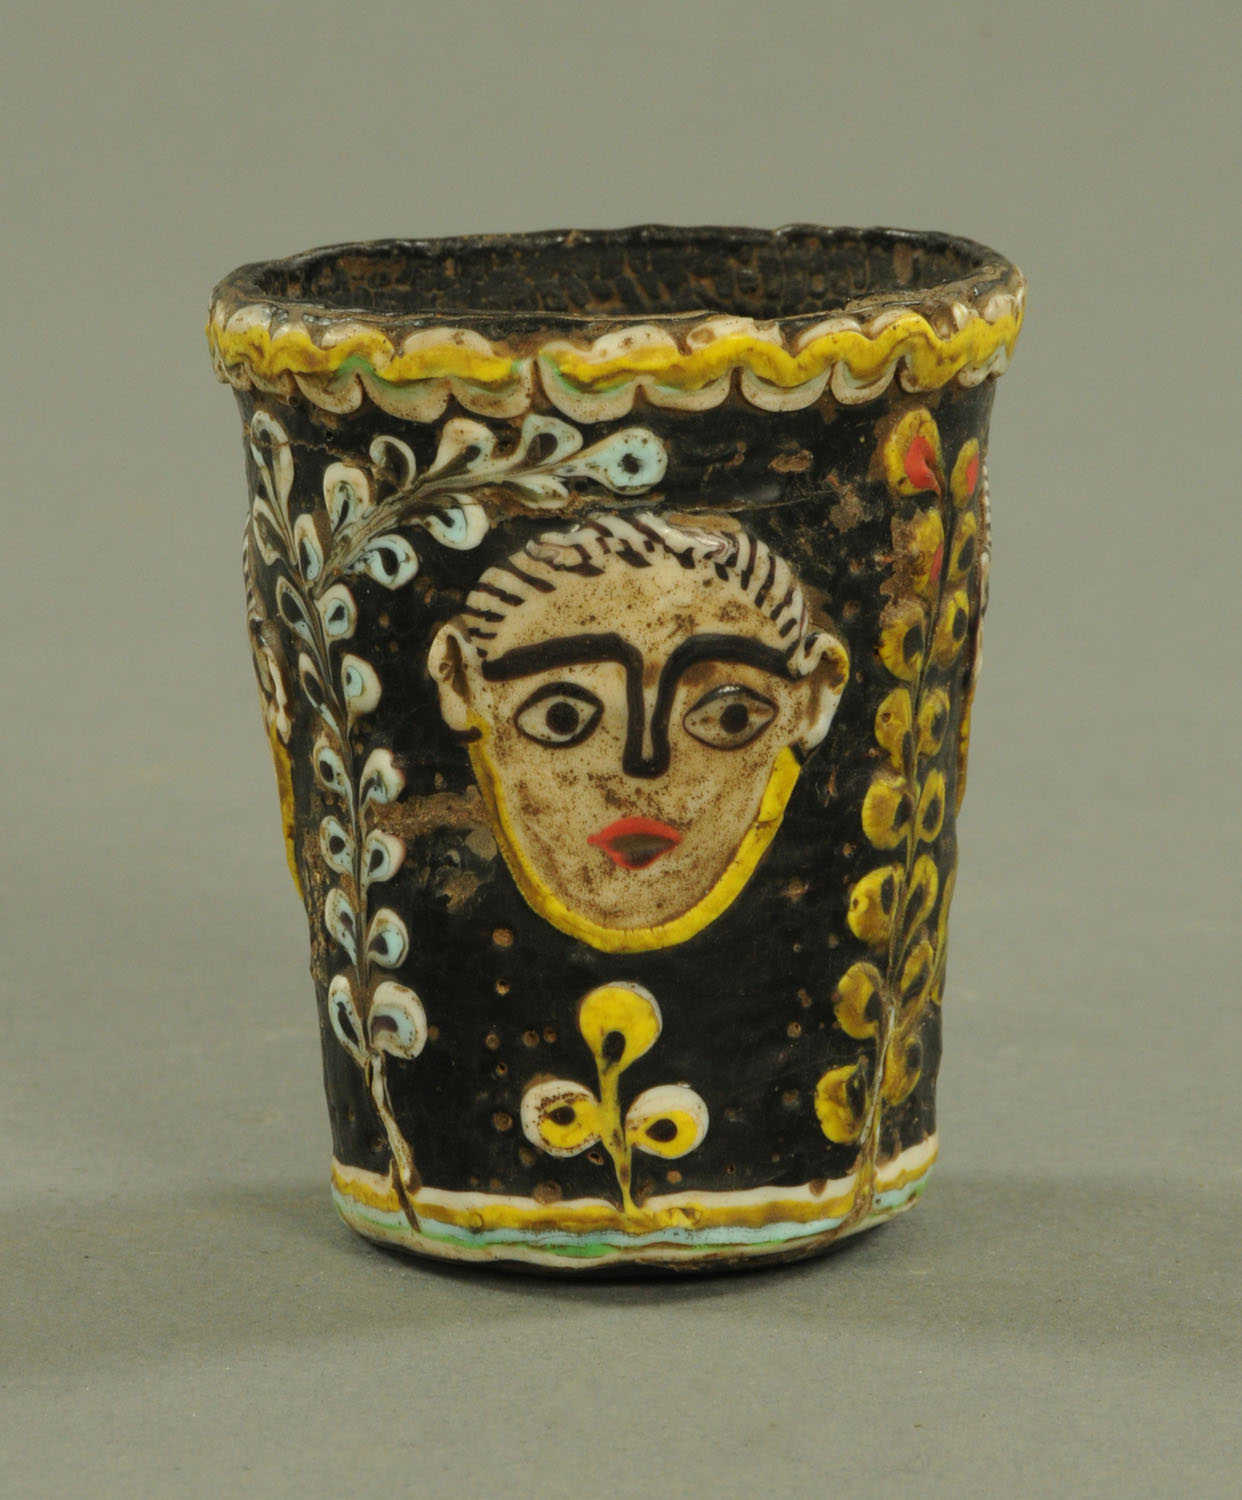 Lot 1004 - A Phoenician glass tumbler, second century BC-6th century AD,